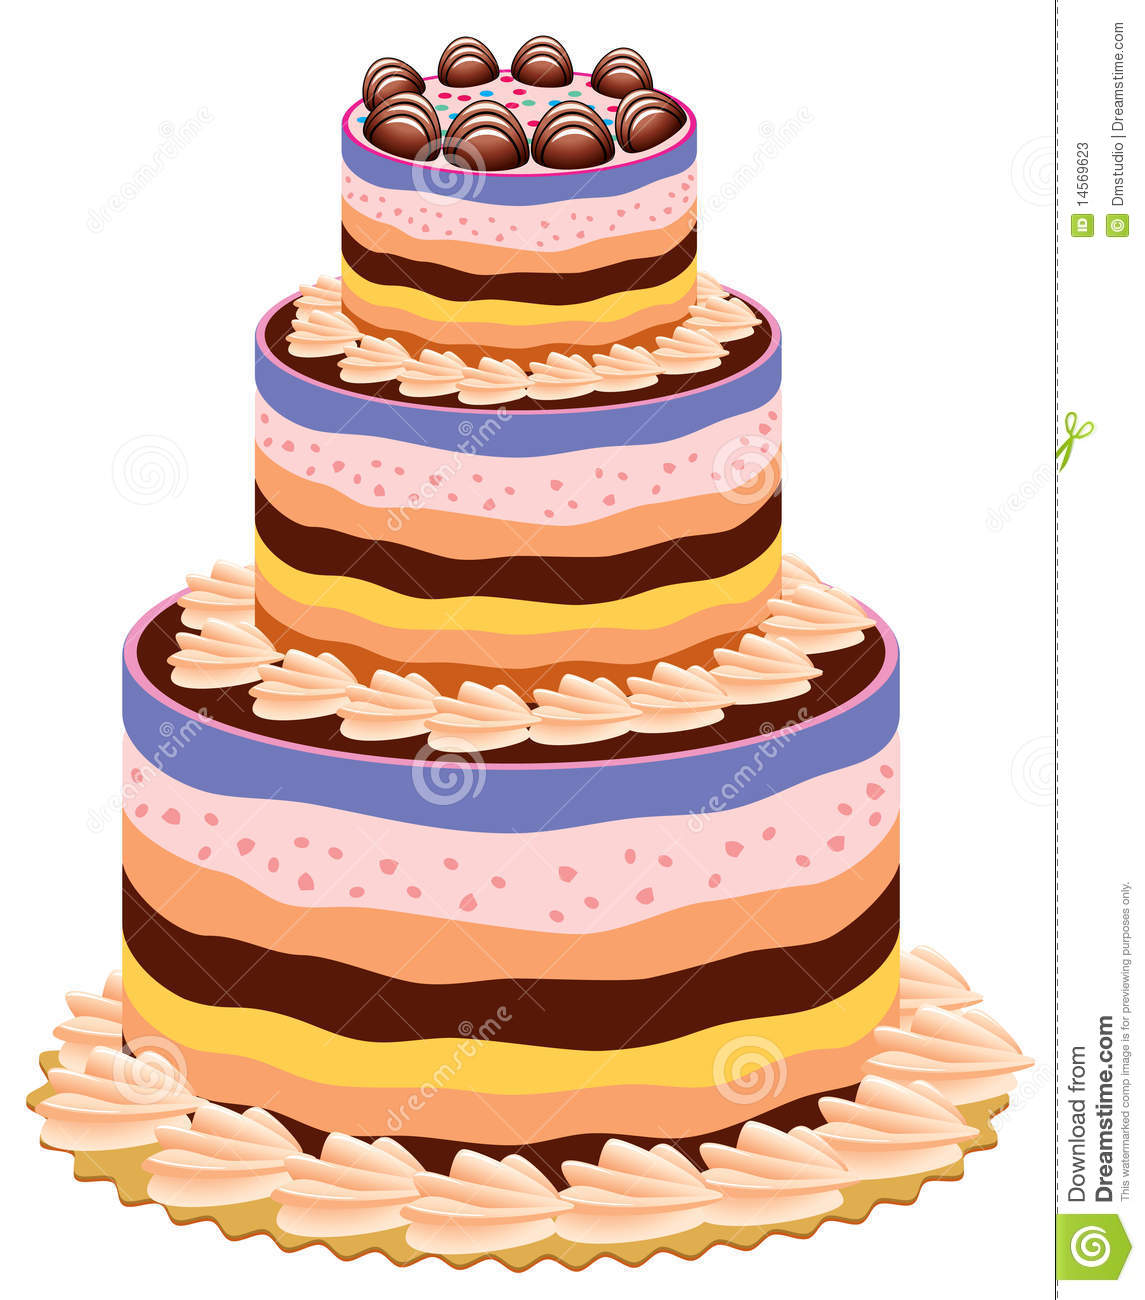 Cake Pictures Big : Big cake stock vector. Image of element, bakery ...